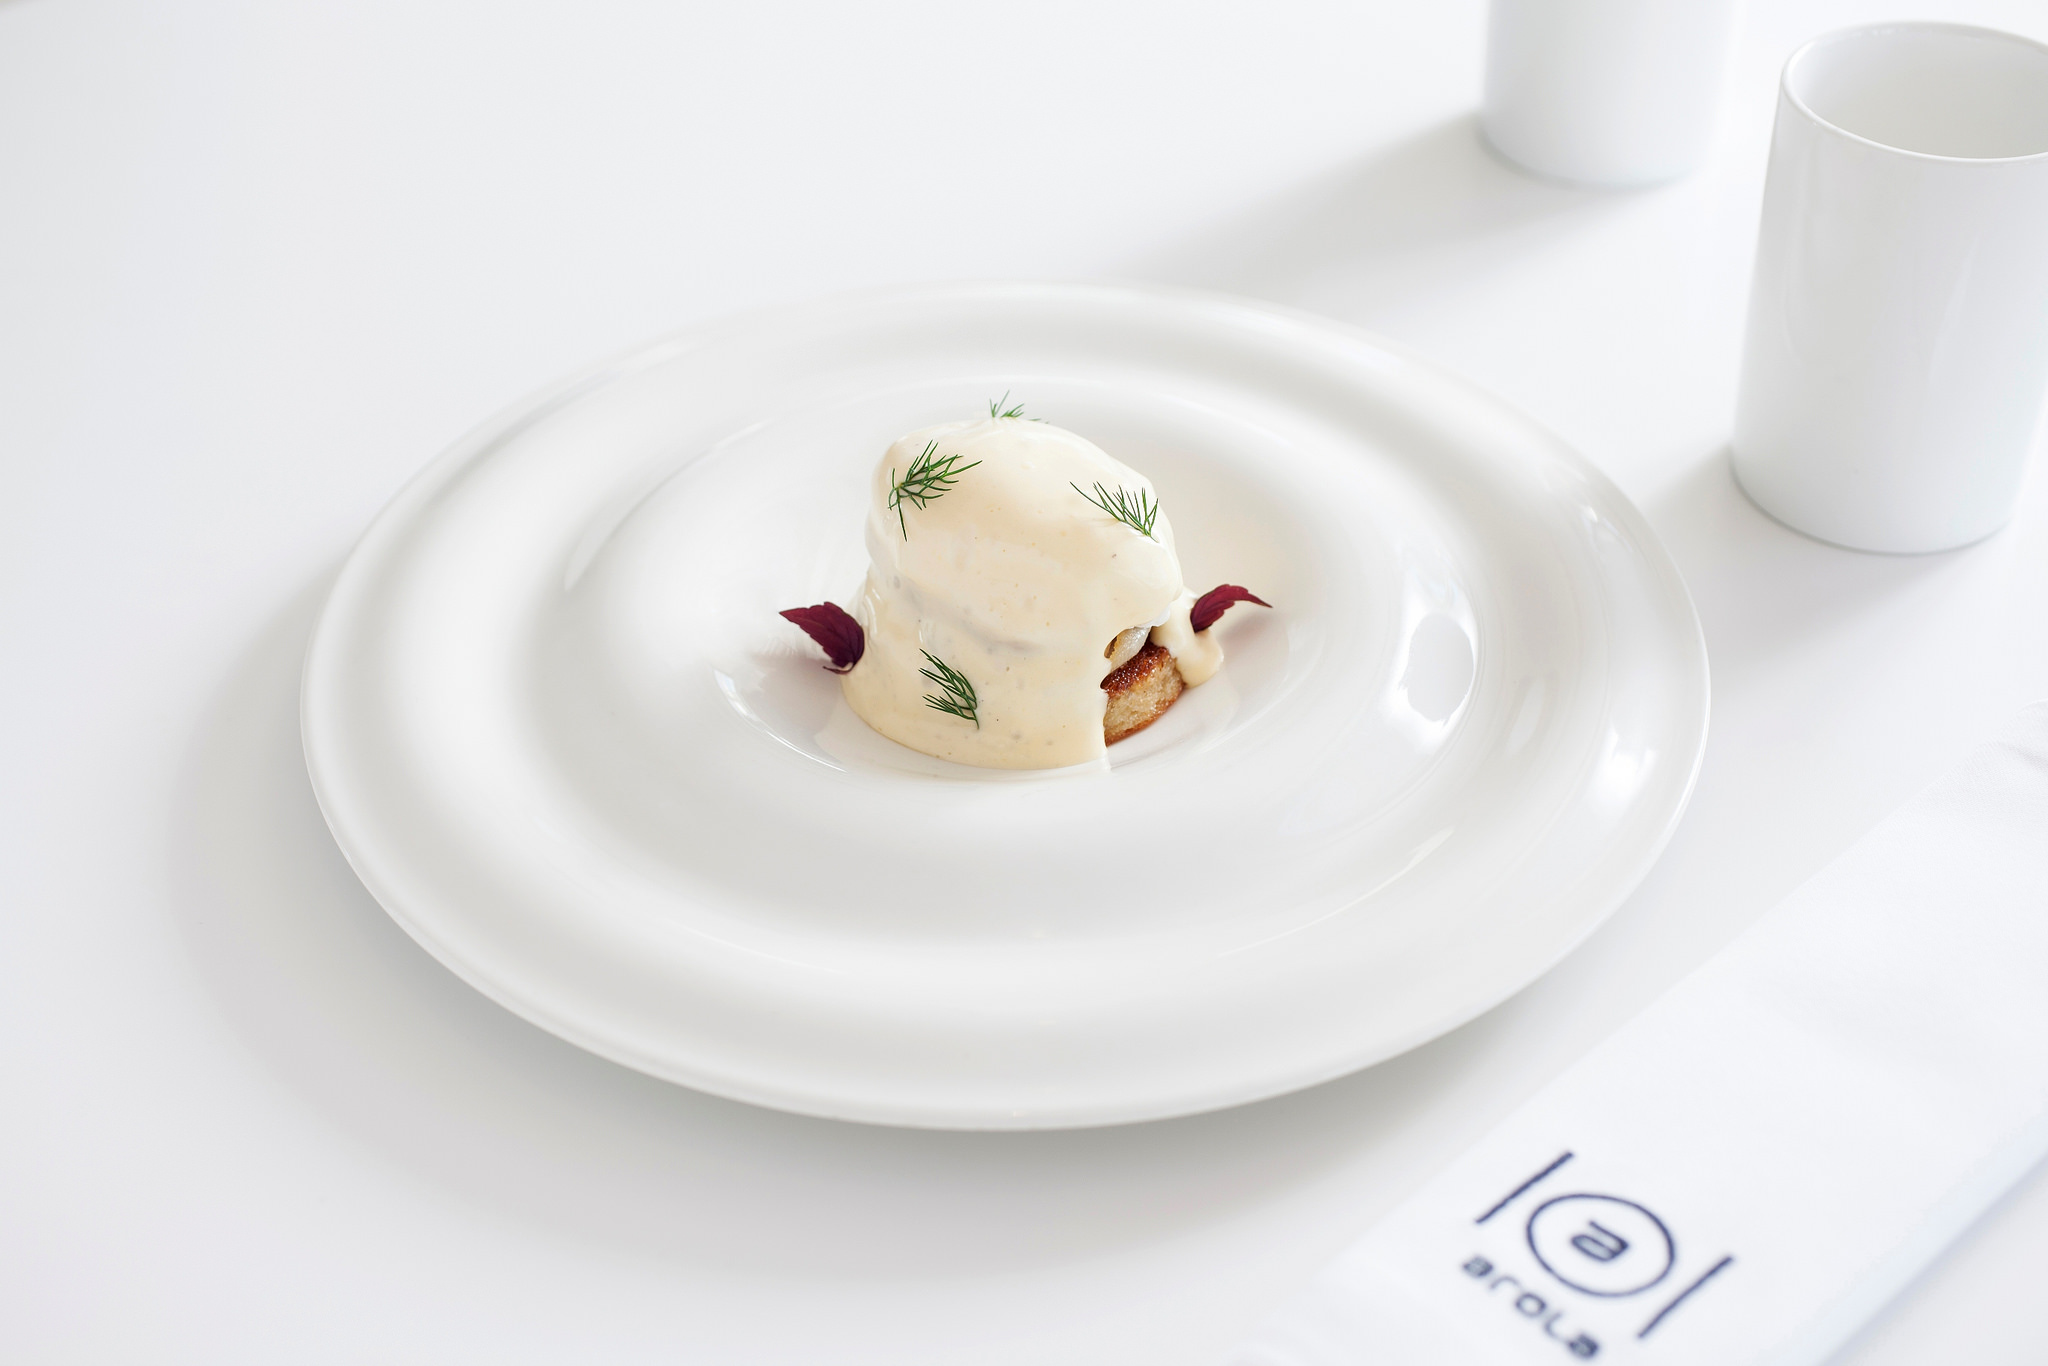 Eggs Benedict at the Arola restaurant in the Arts Hotel | © Imagine Communications / Flickr